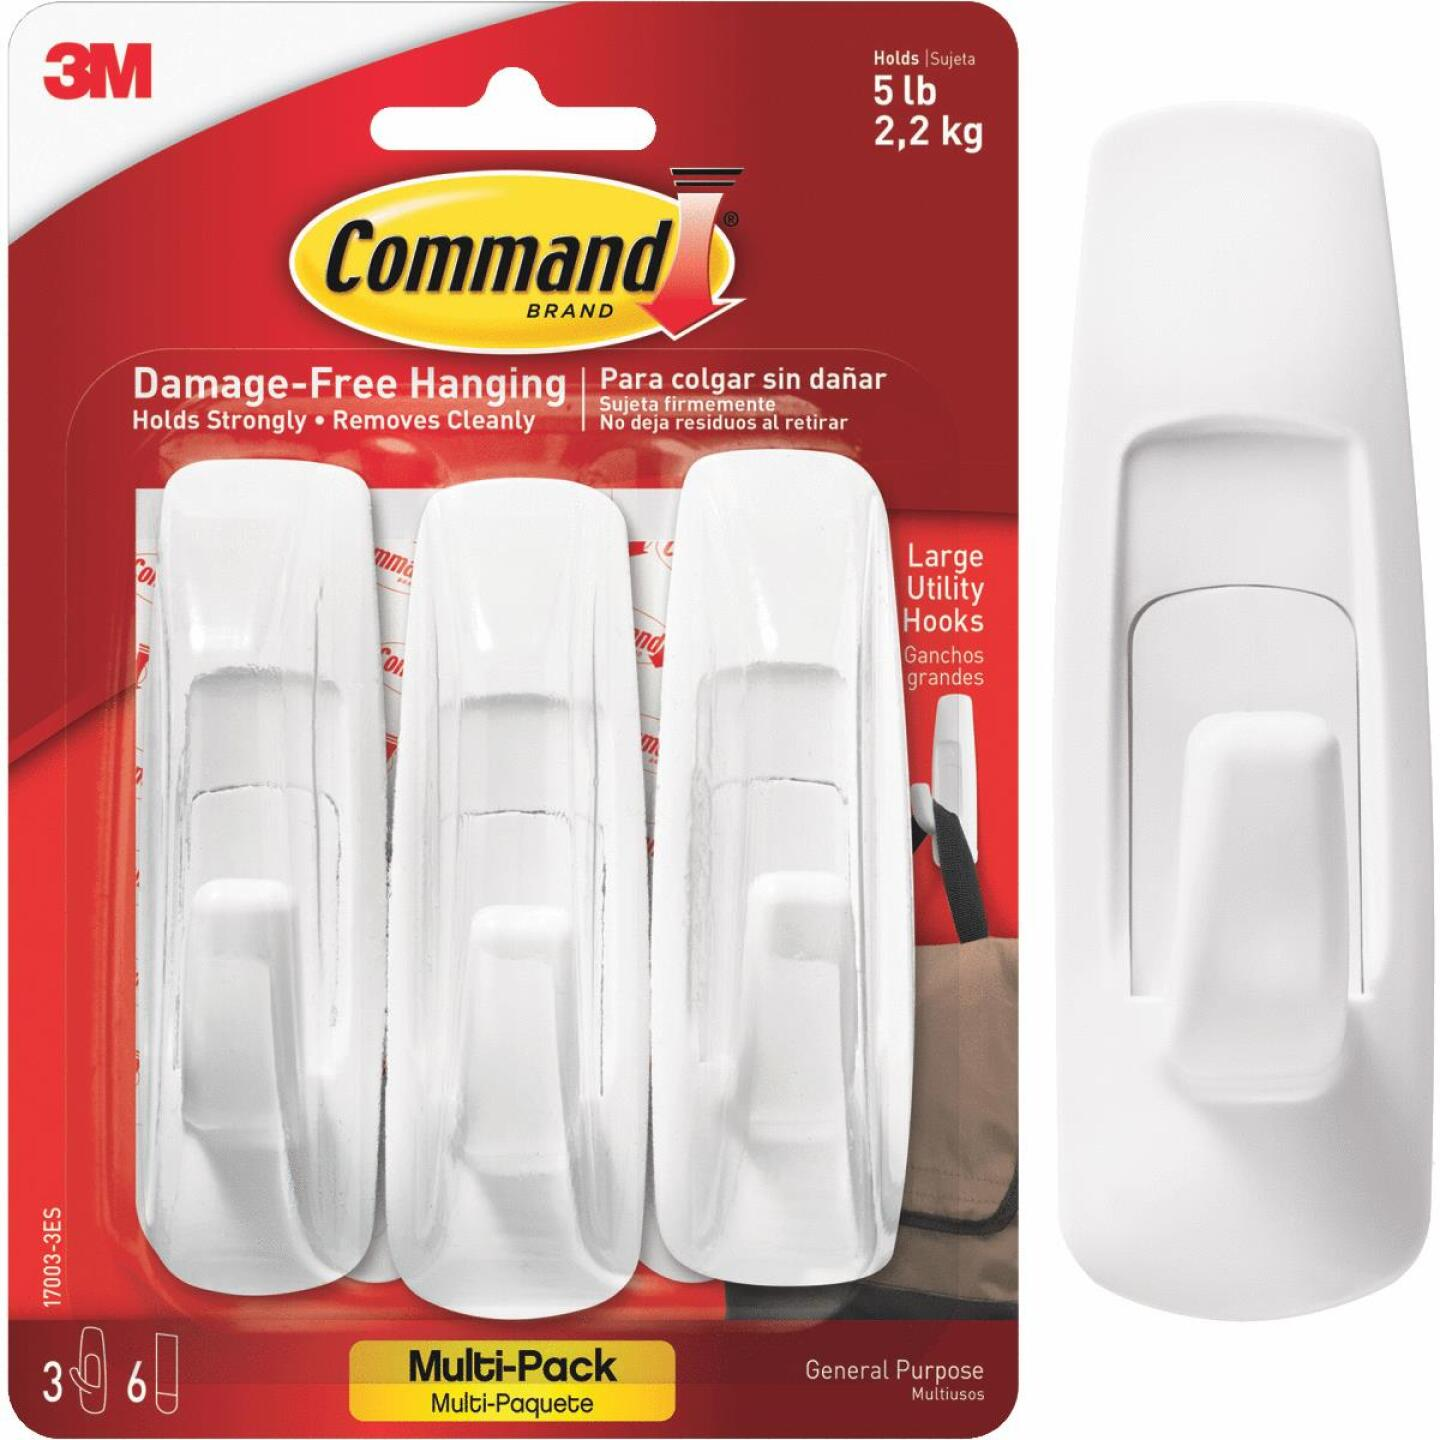 Command 1-1/4 In. x 3-7/8 In. Utility Adhesive Hook (3 Pack) Image 1